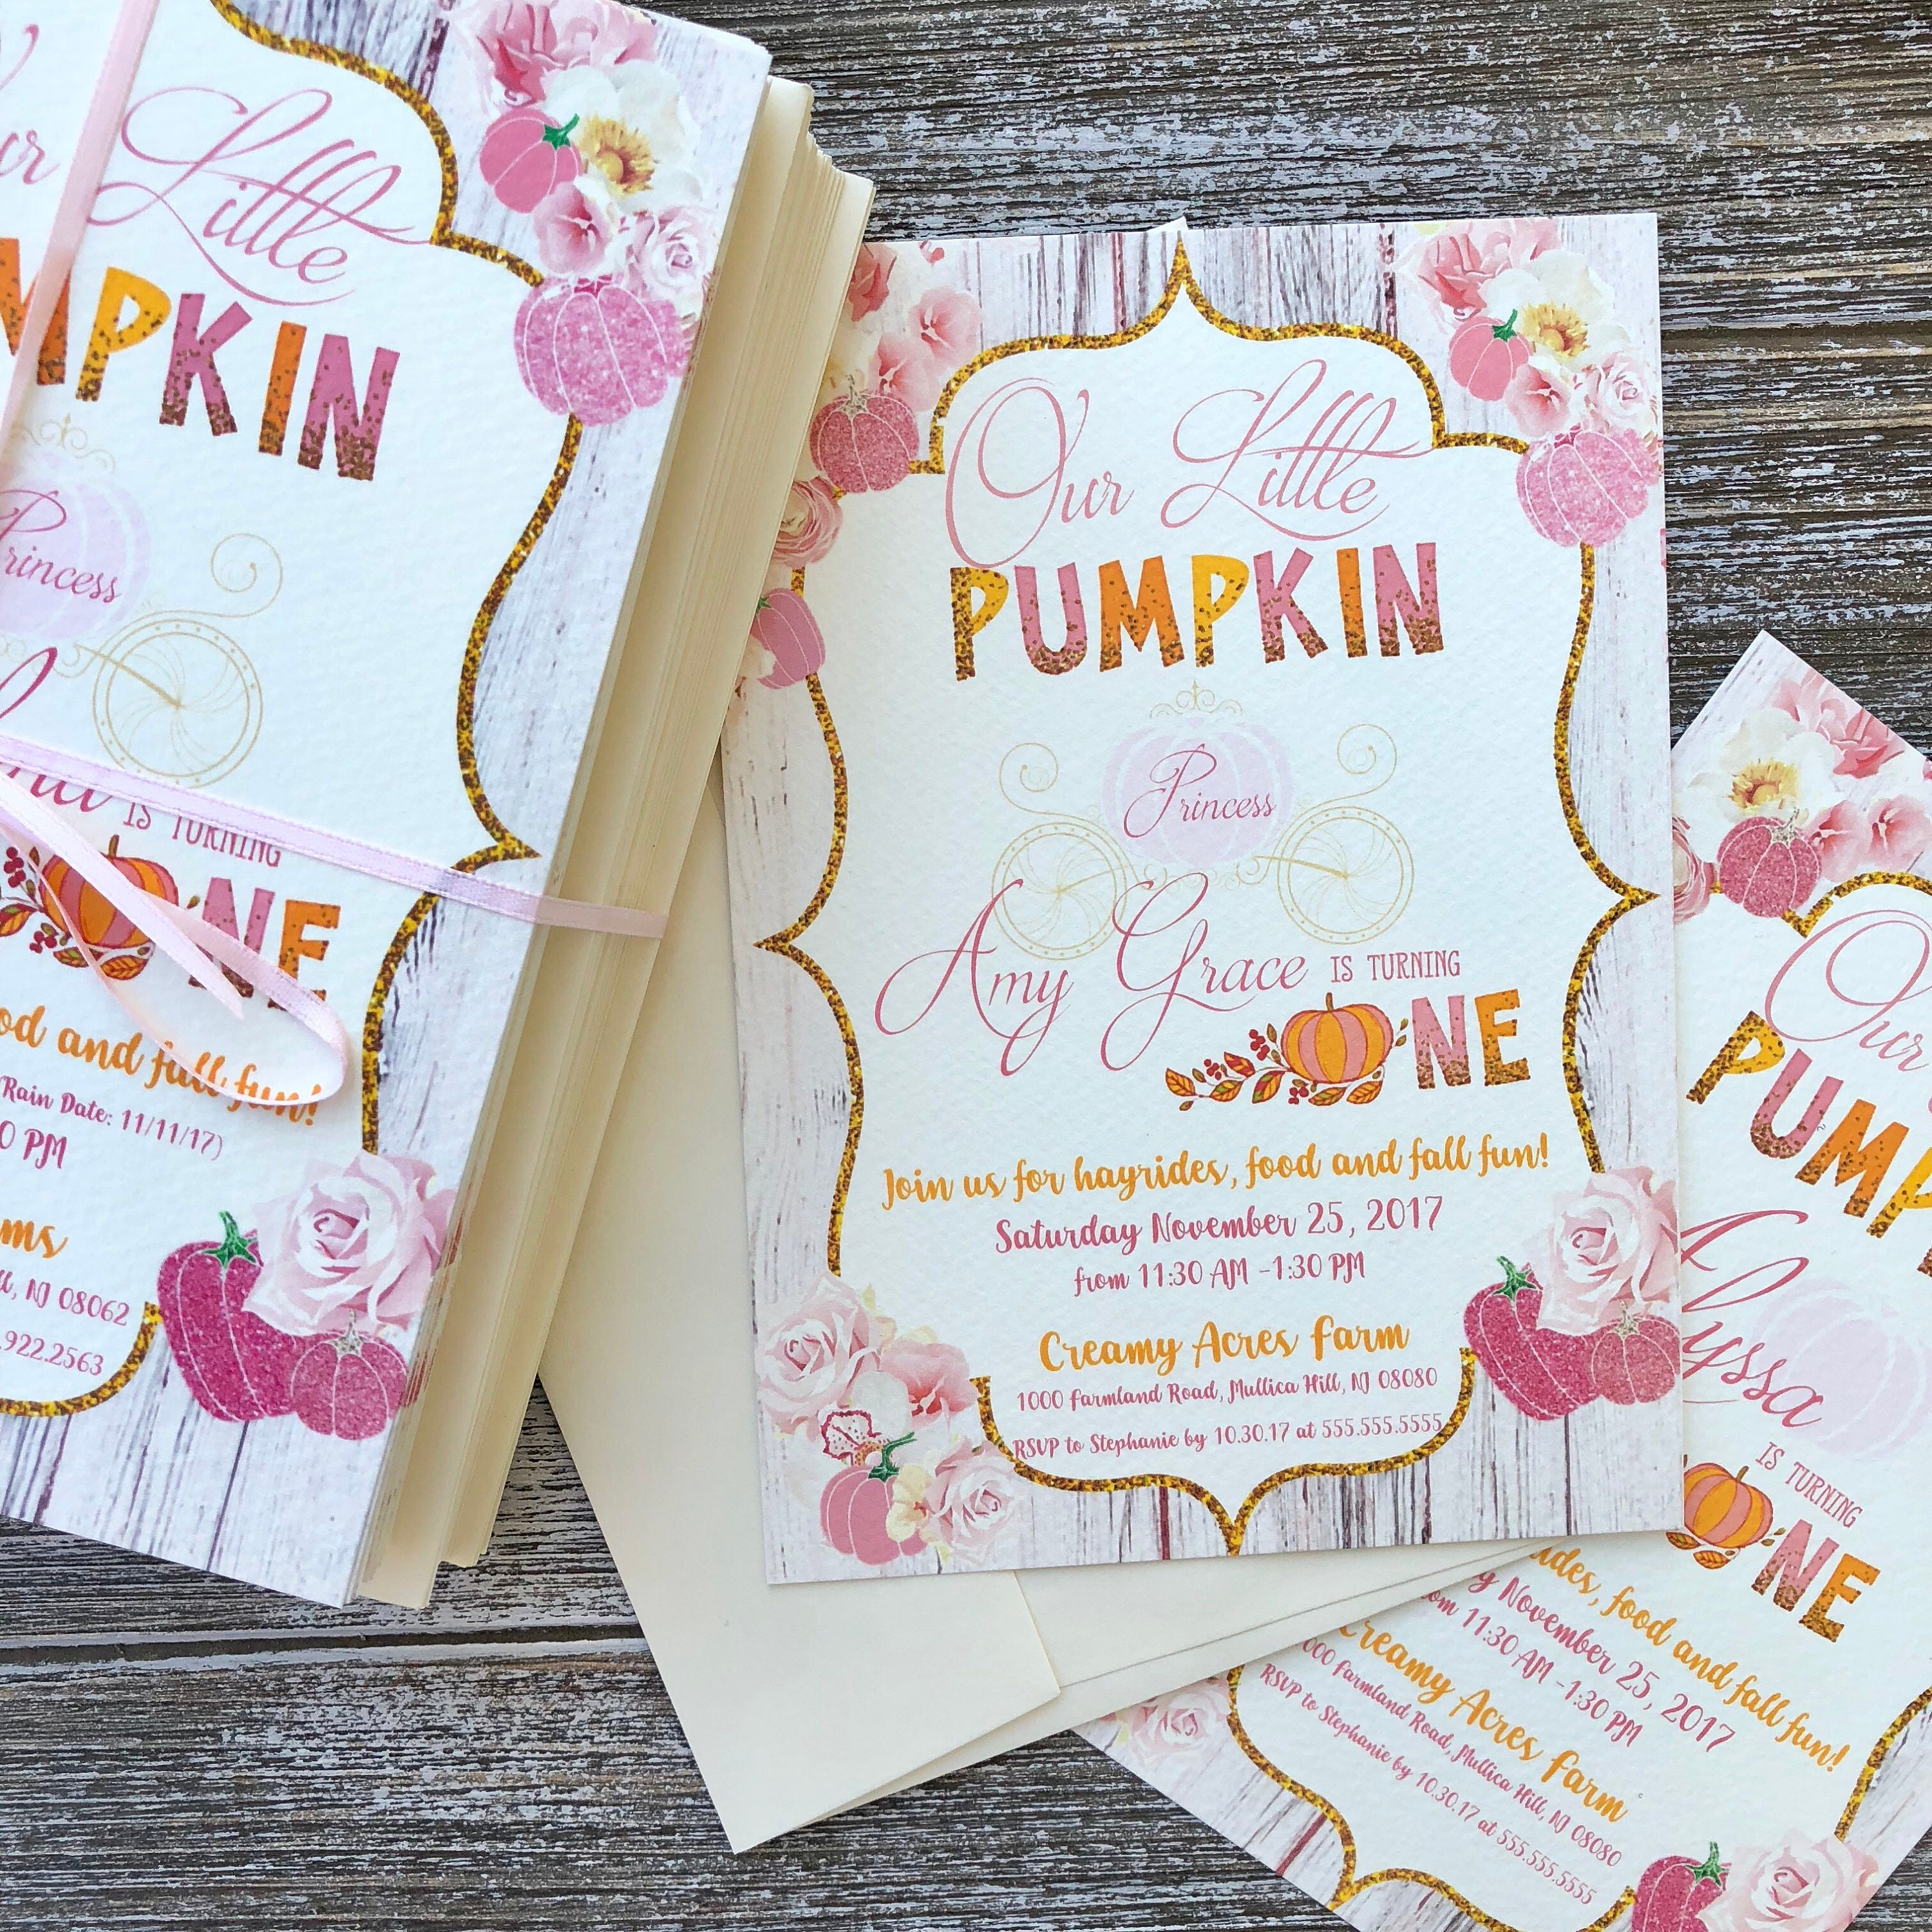 Printed & Shipped - Our little Pumpkin Princess is Turning One ...